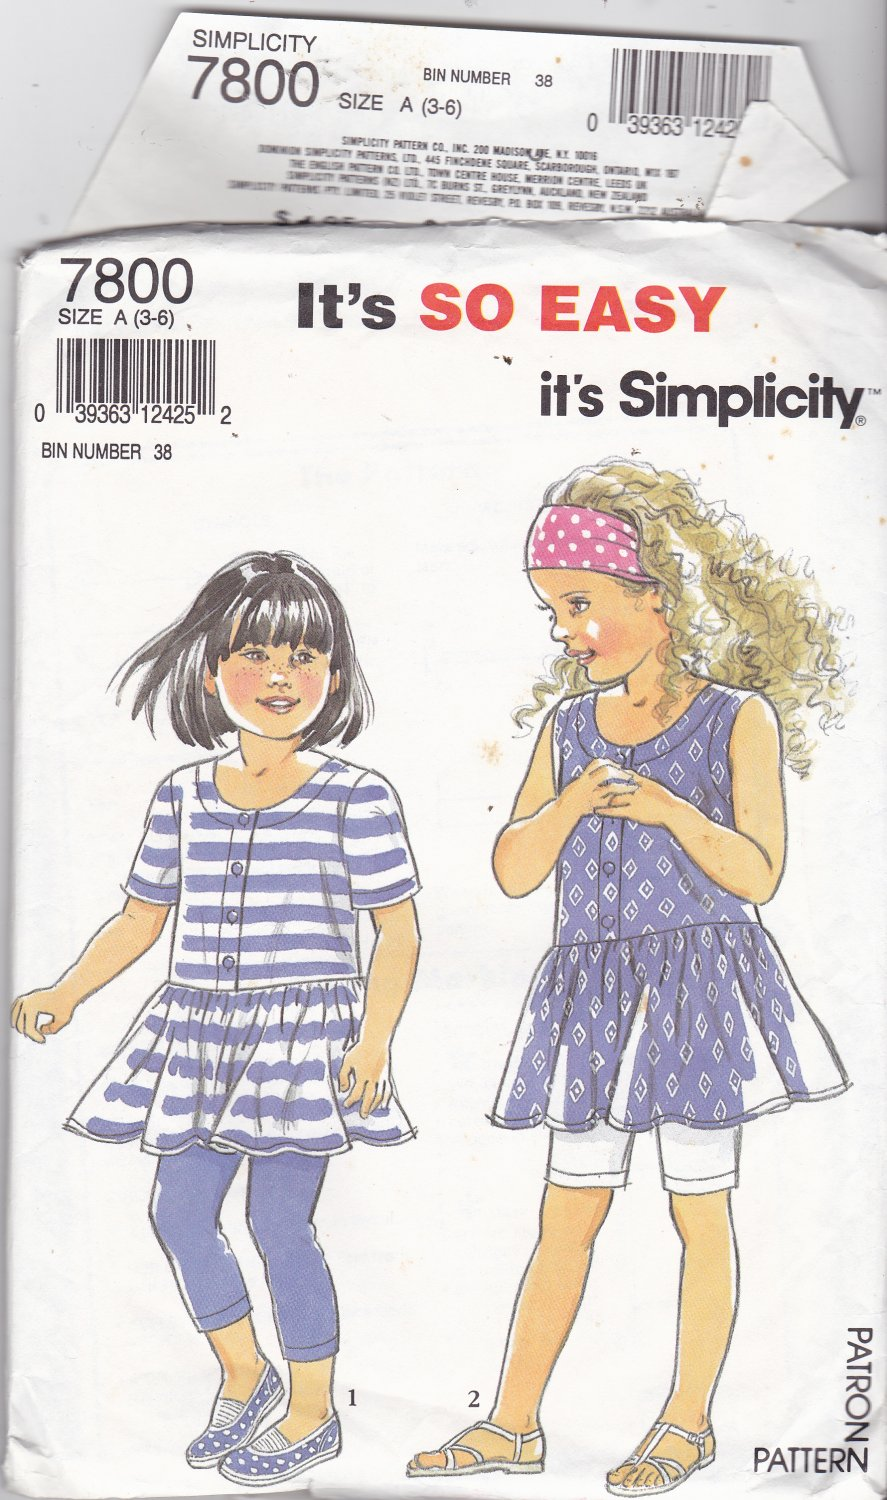 Simplicity 7800 Girls Size 3 4 5 6, may be missing pieces